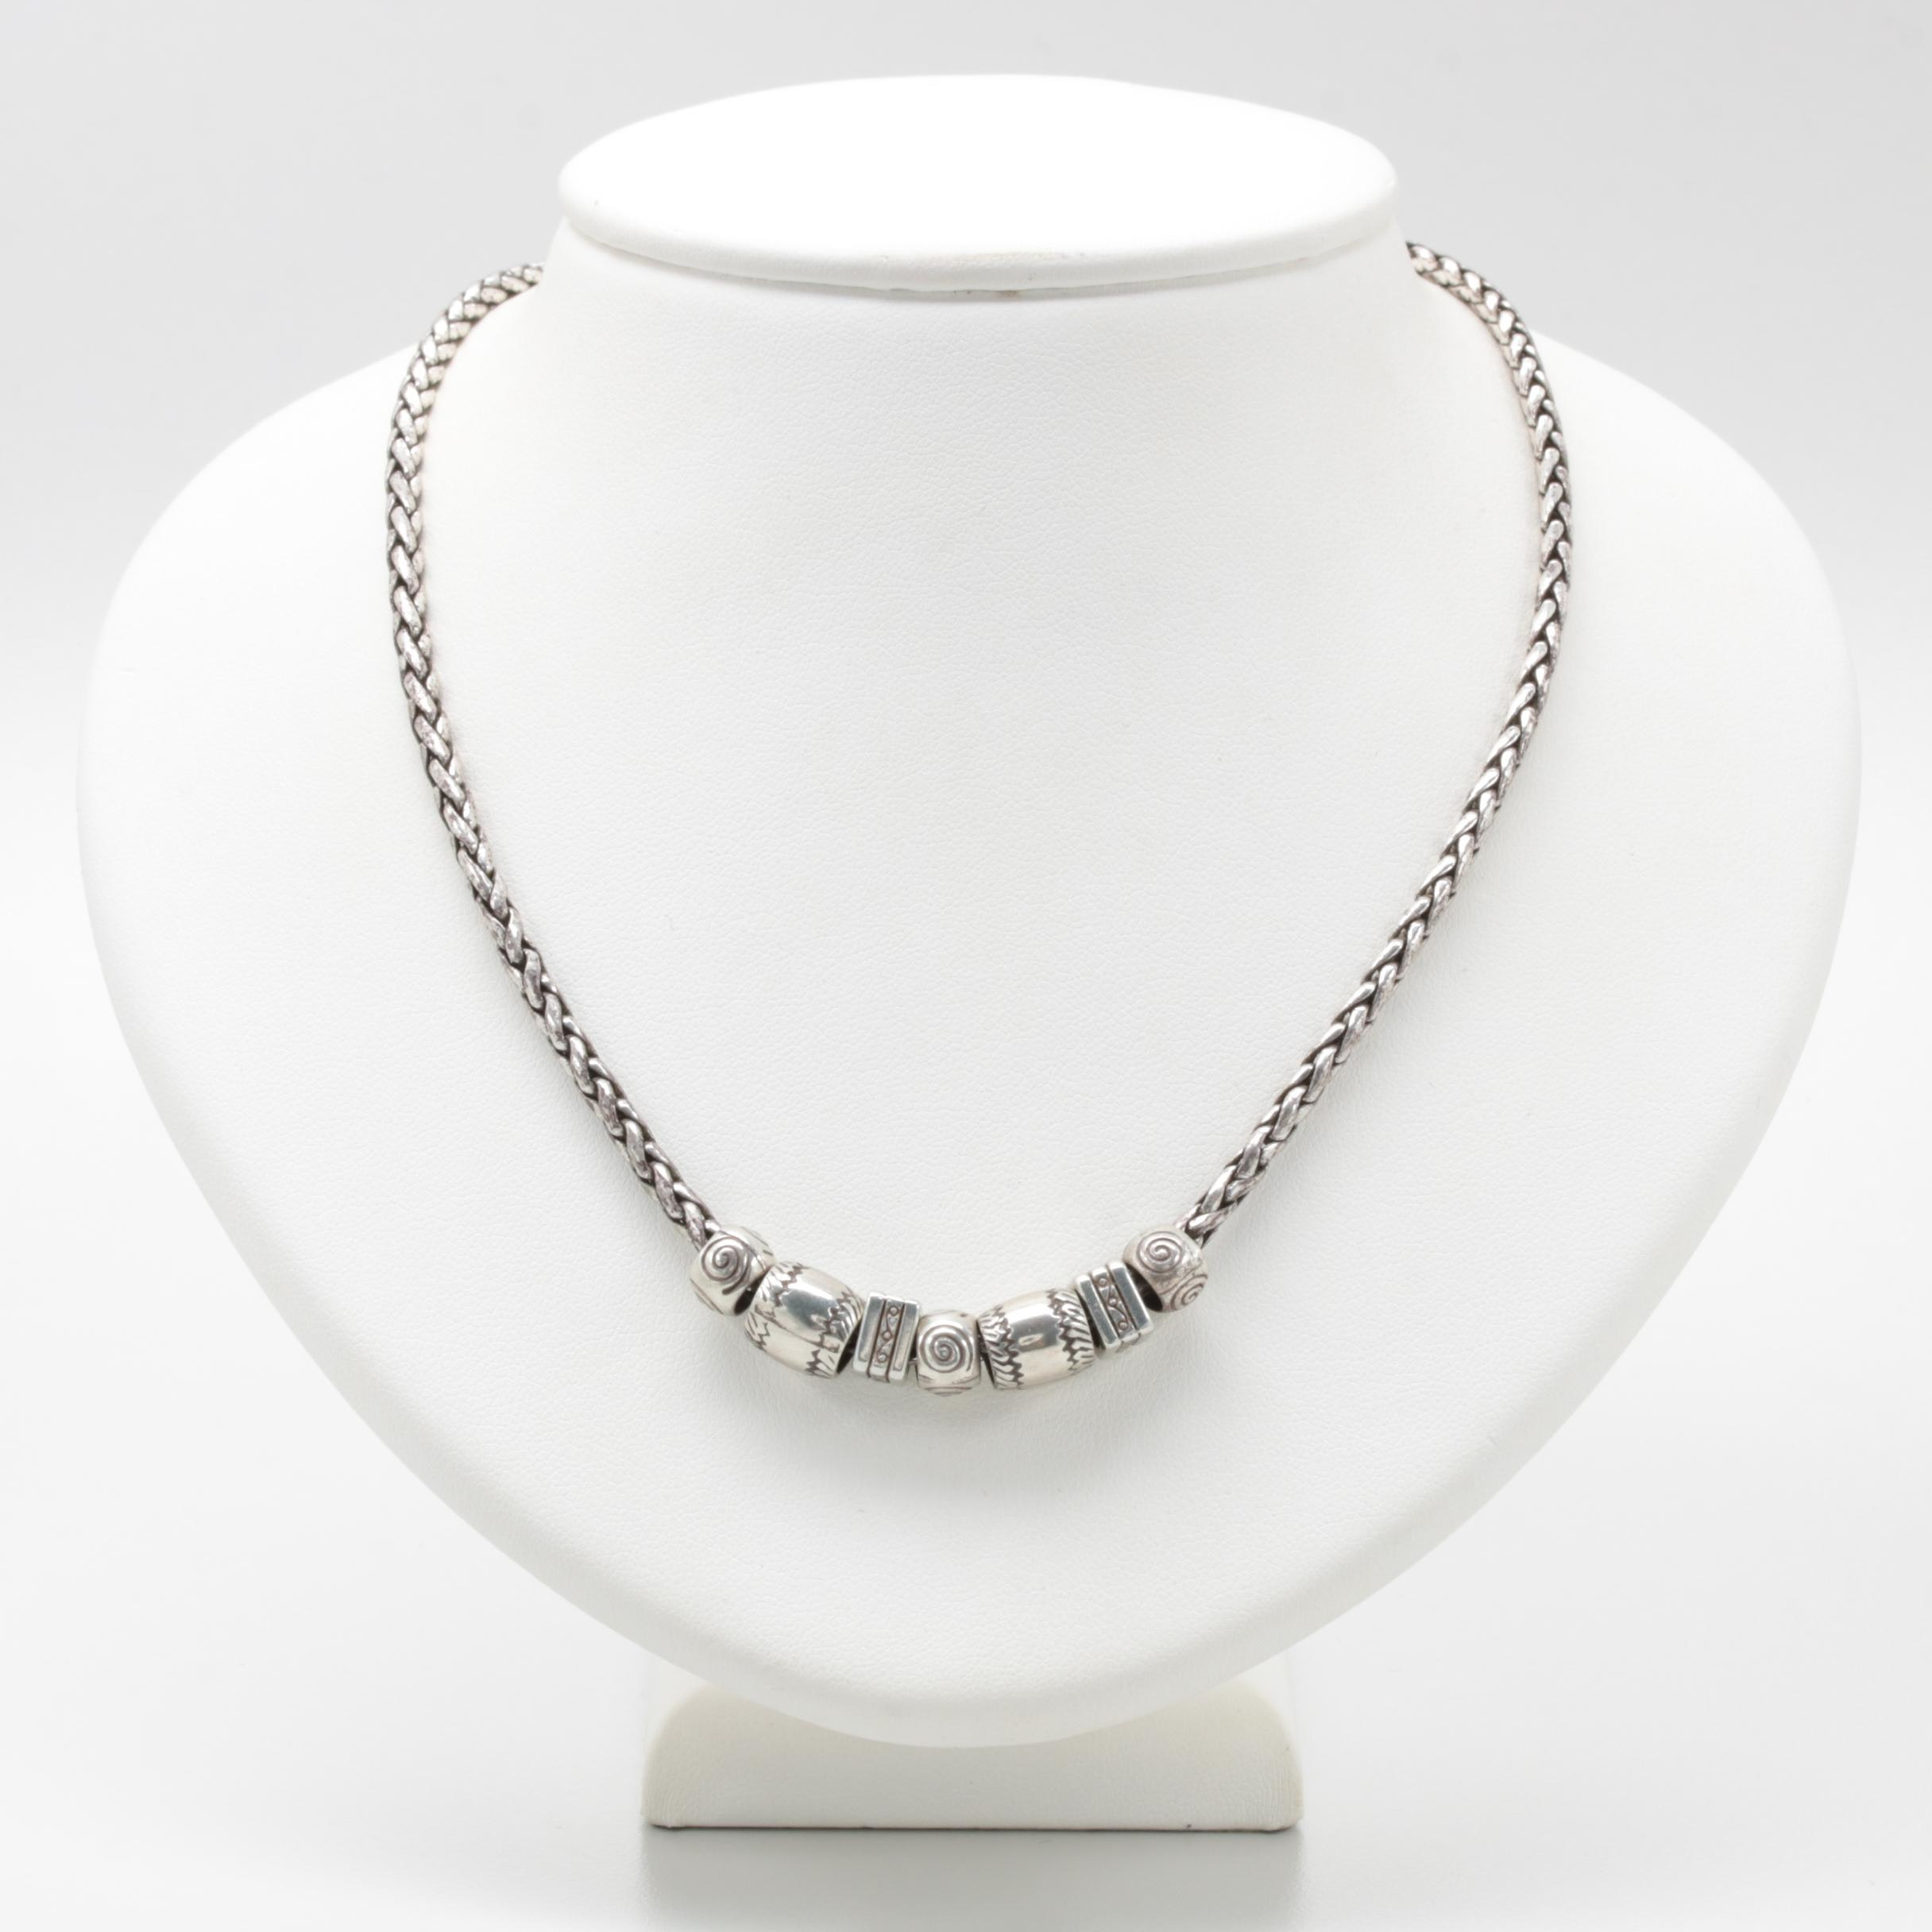 Silvertone Charm Necklace